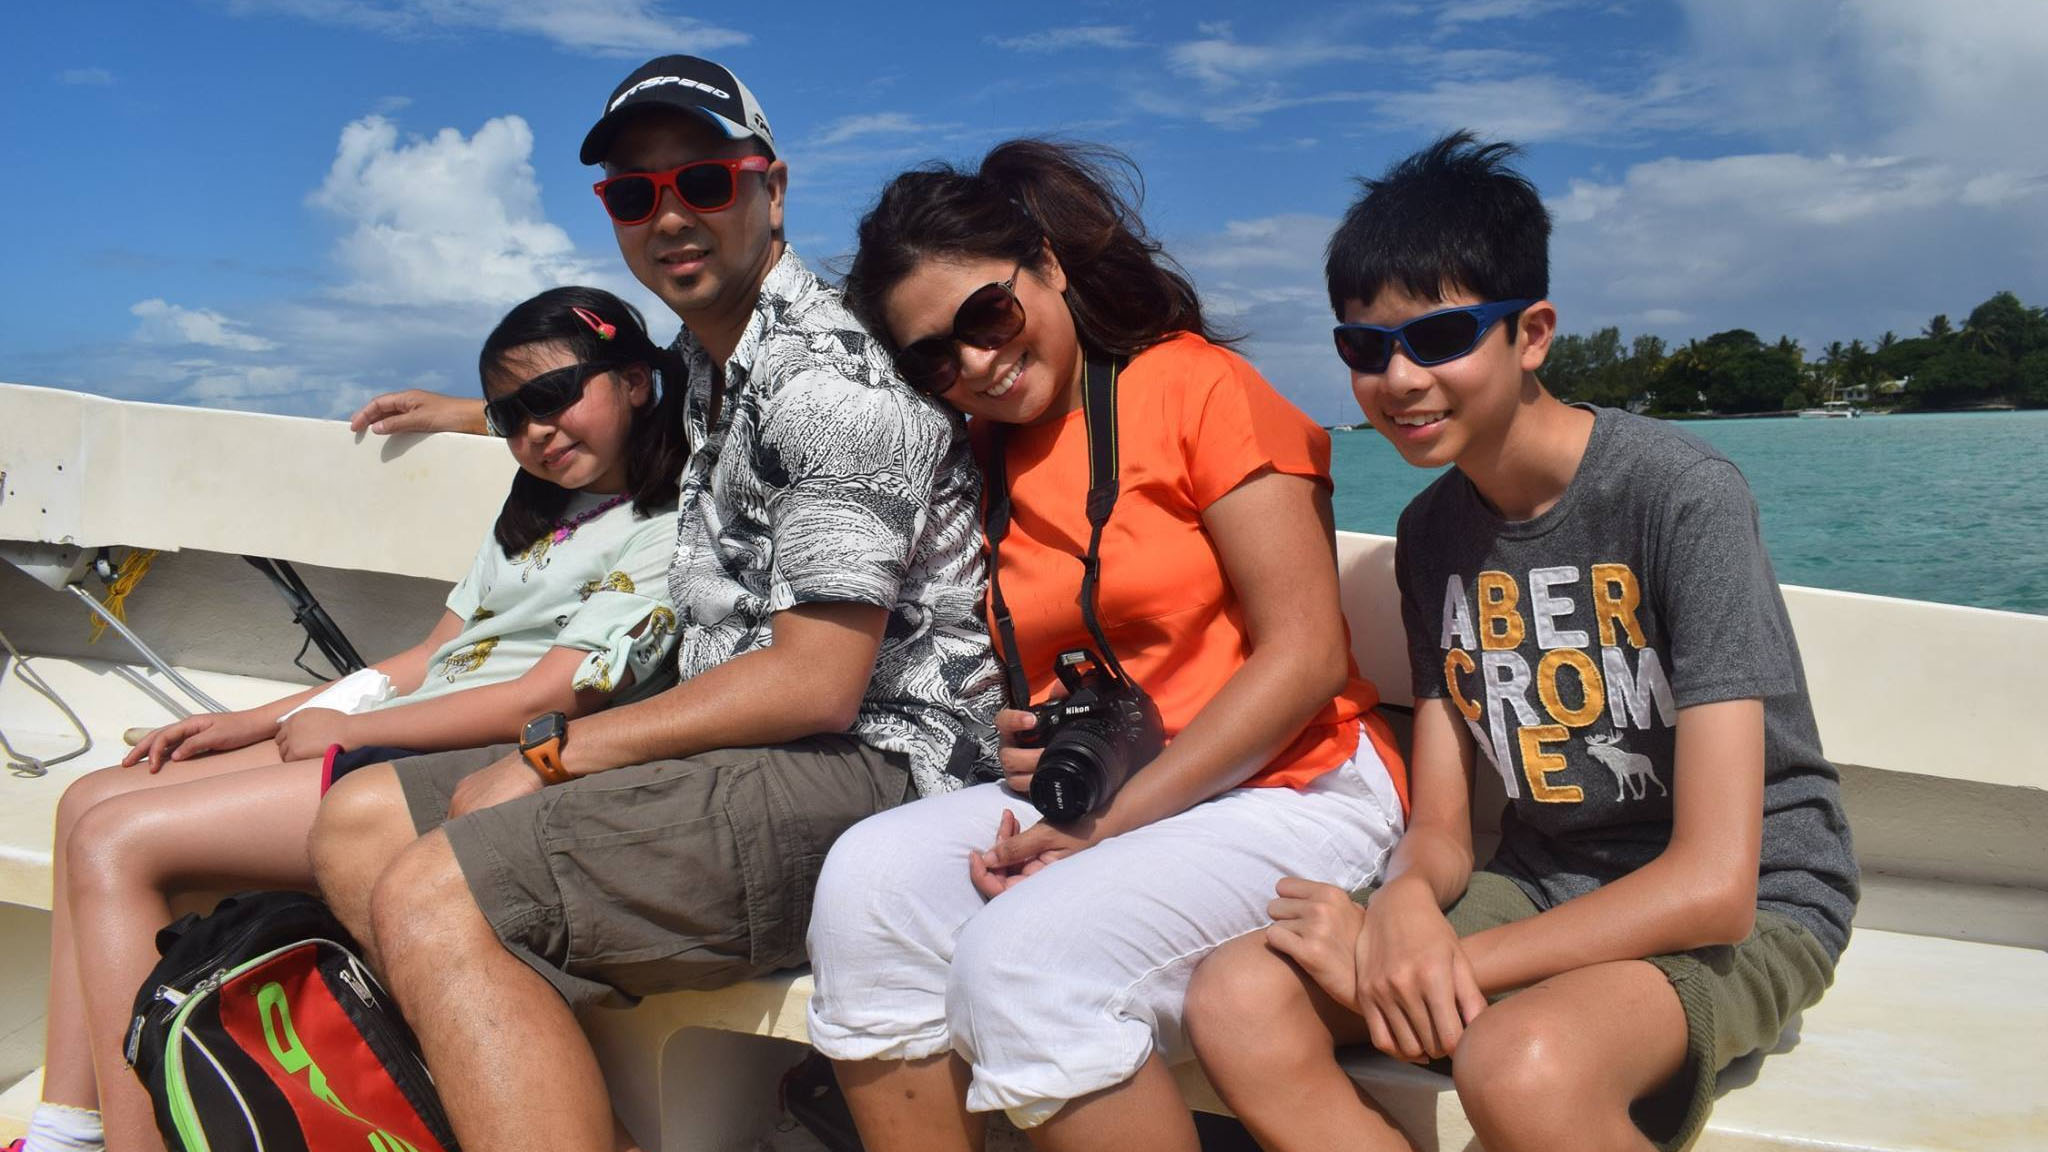 Engineer Sheila sits with her family on a boat.